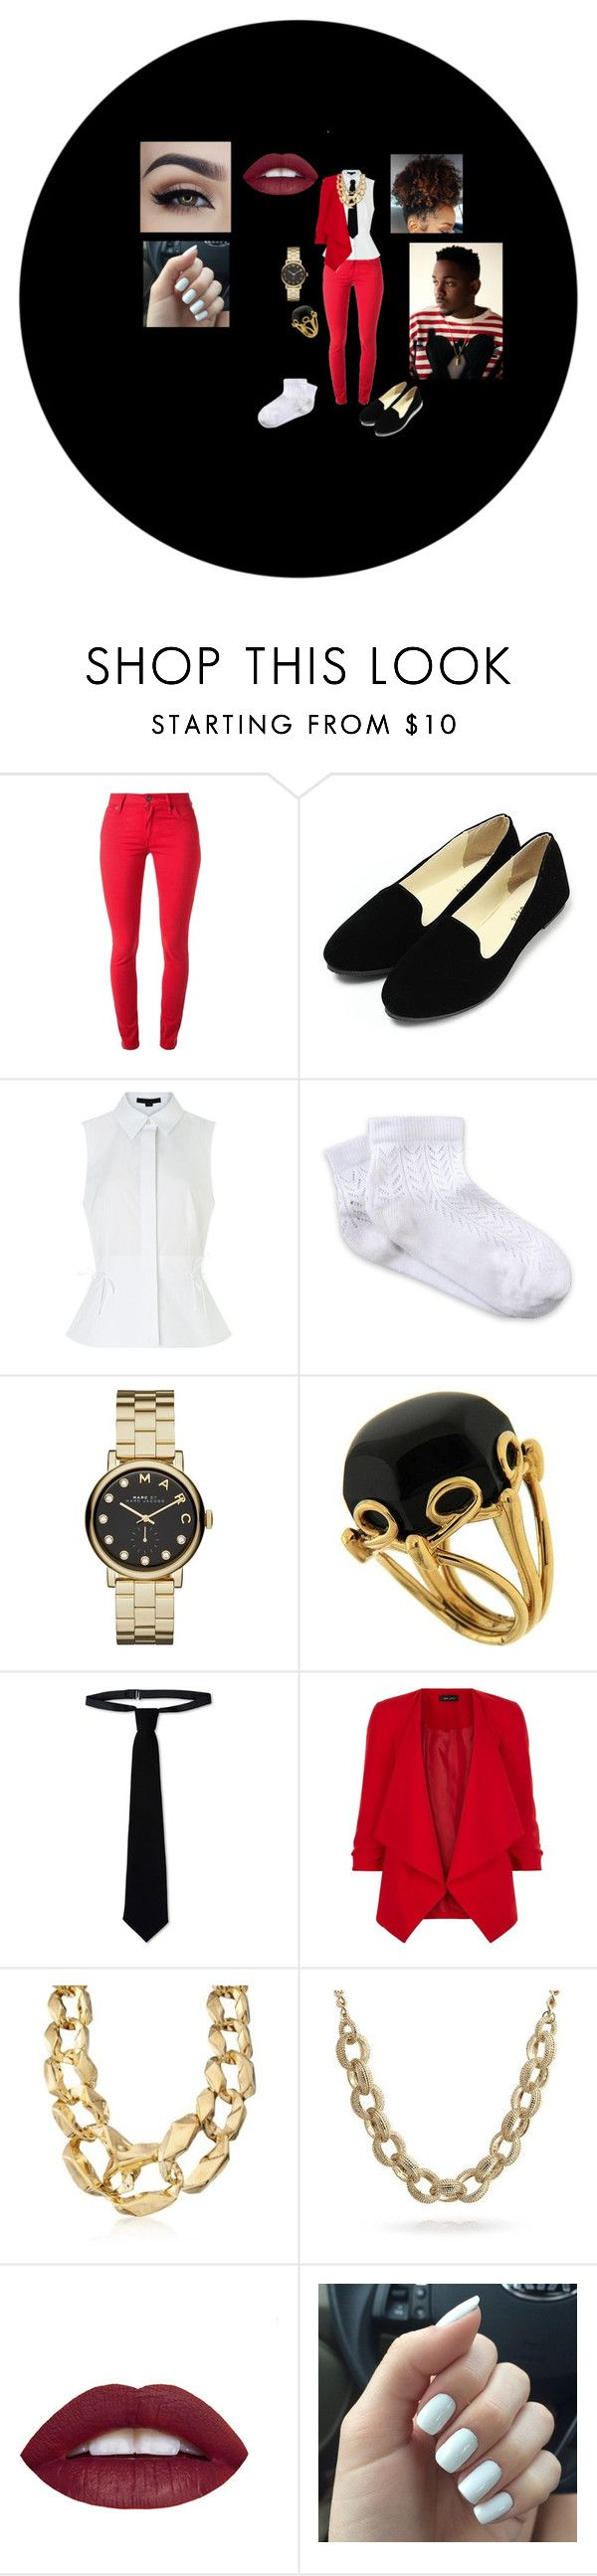 """""""Kendrick Lamar - Swimming Pools"""" by chibi-inuzuka ❤ liked on Polyvore featuring Burberry, Alexander Wang, RED Valentino, Marc by Marc Jacobs, Valentin Magro, New Look, Ross-Simons and Bling Jewelry"""